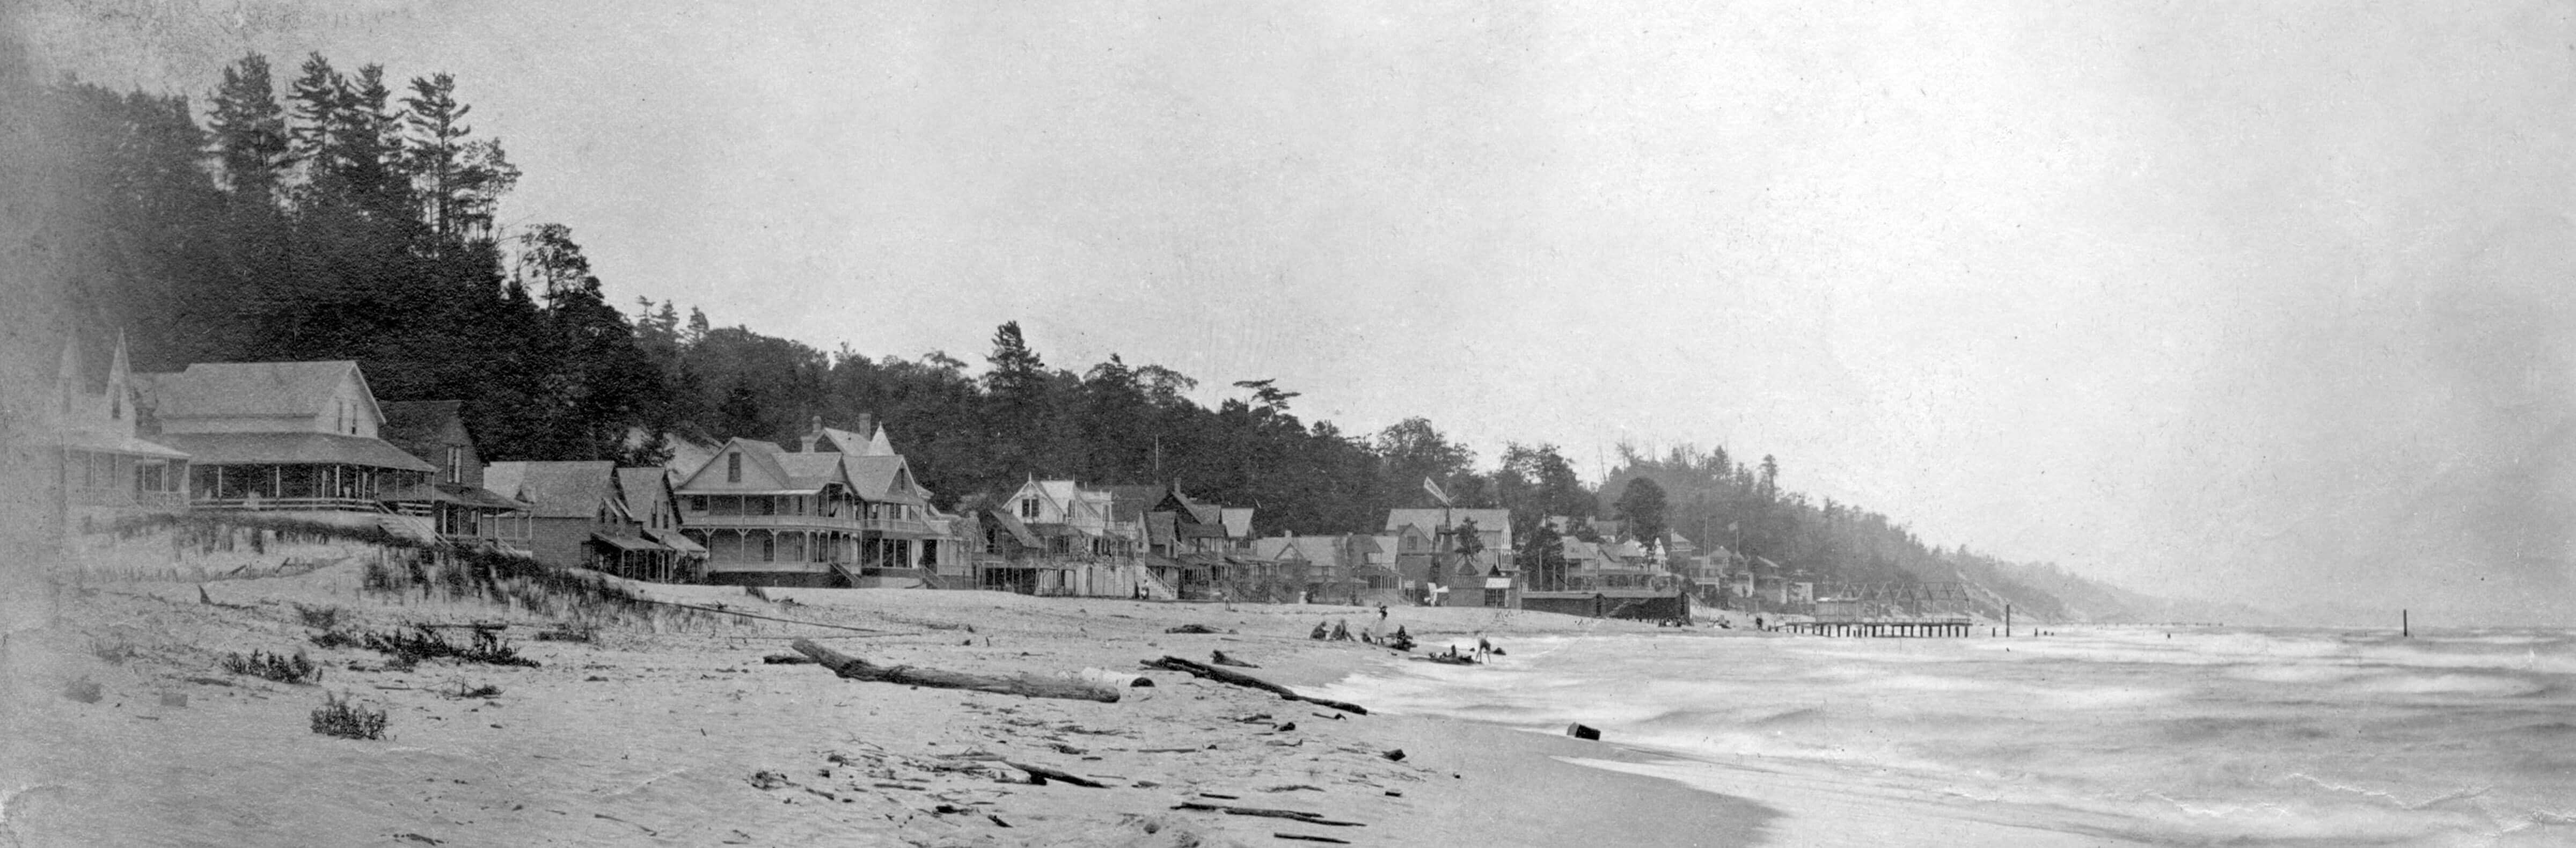 1900 Early Macatawa Cottages